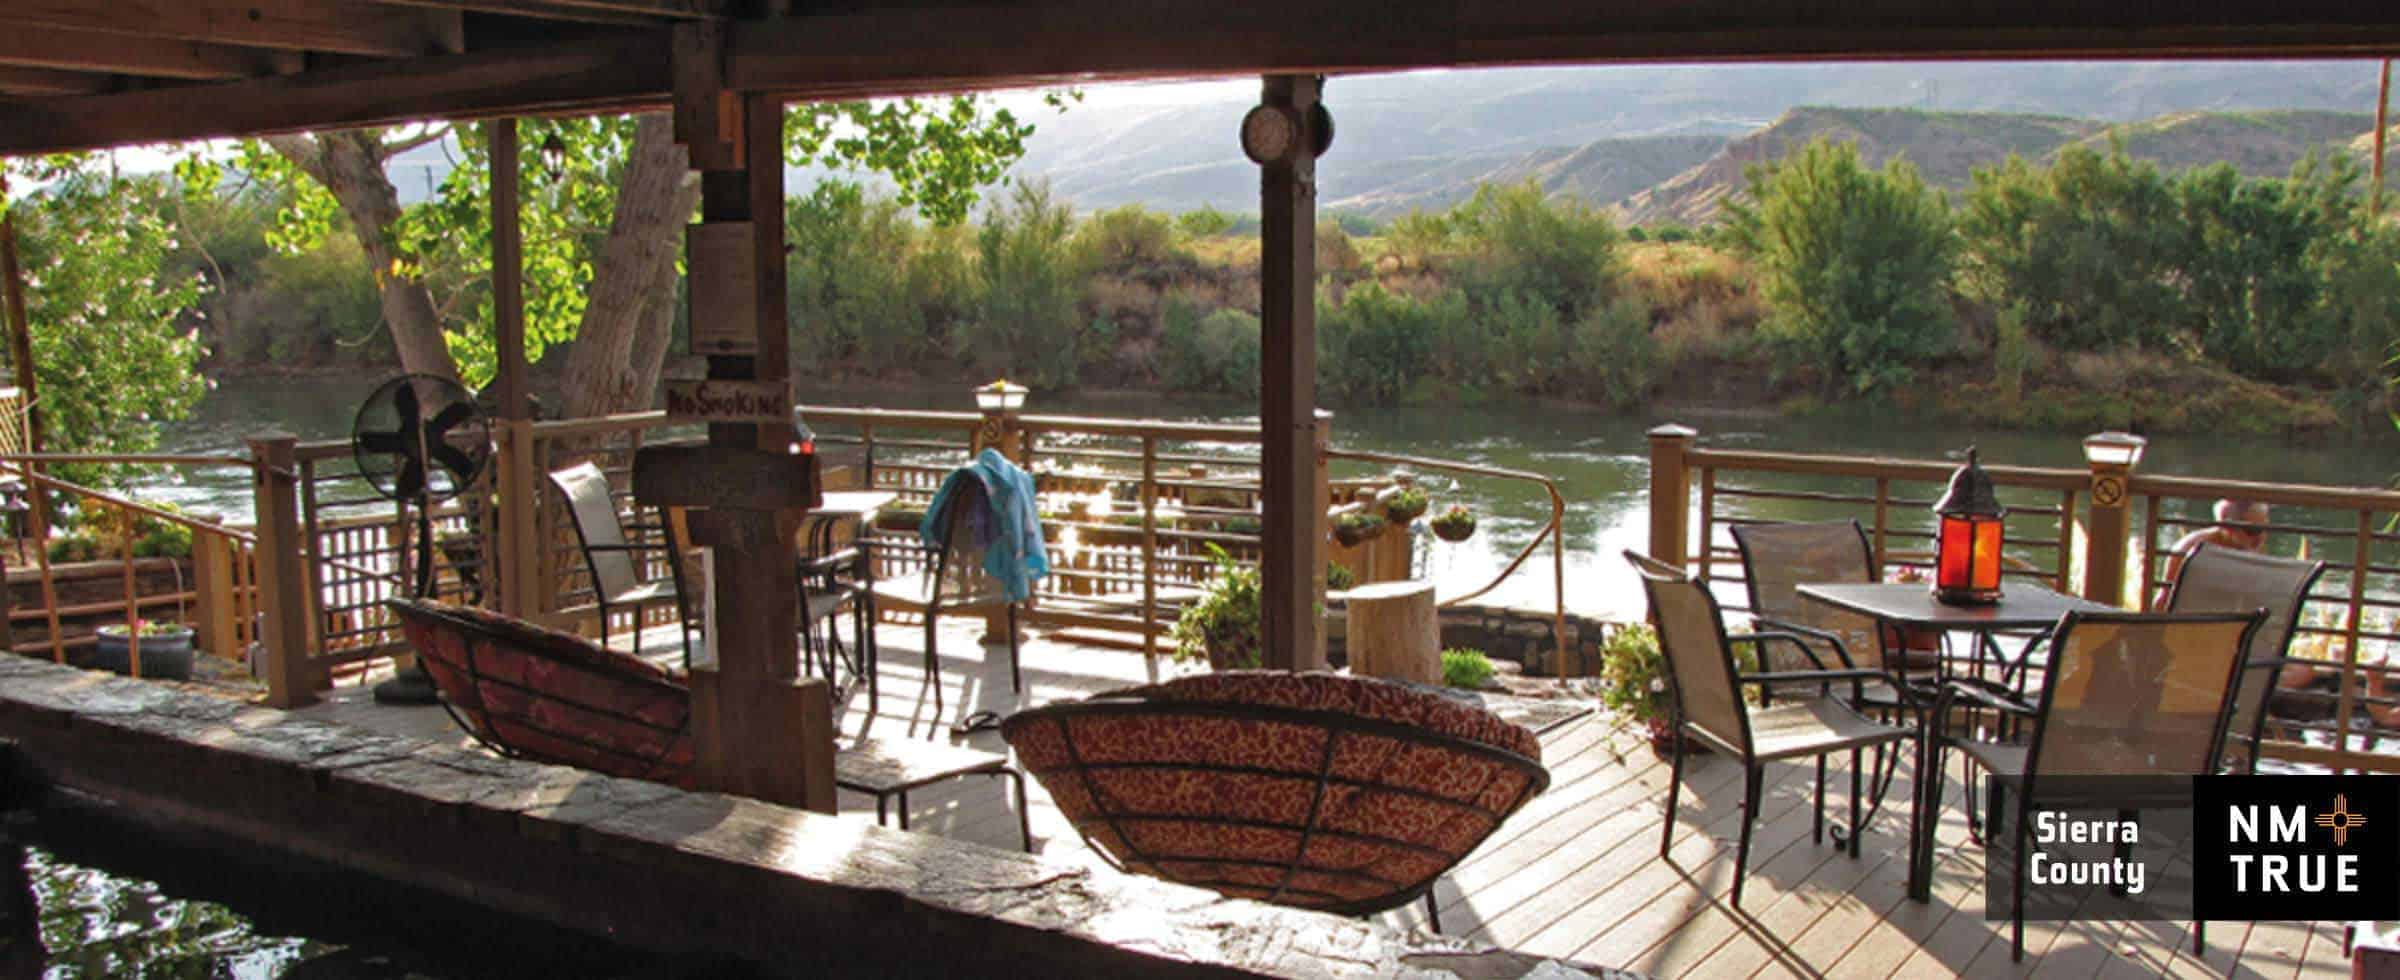 Riverbend Hot Springs on the banks of the Rio Grande